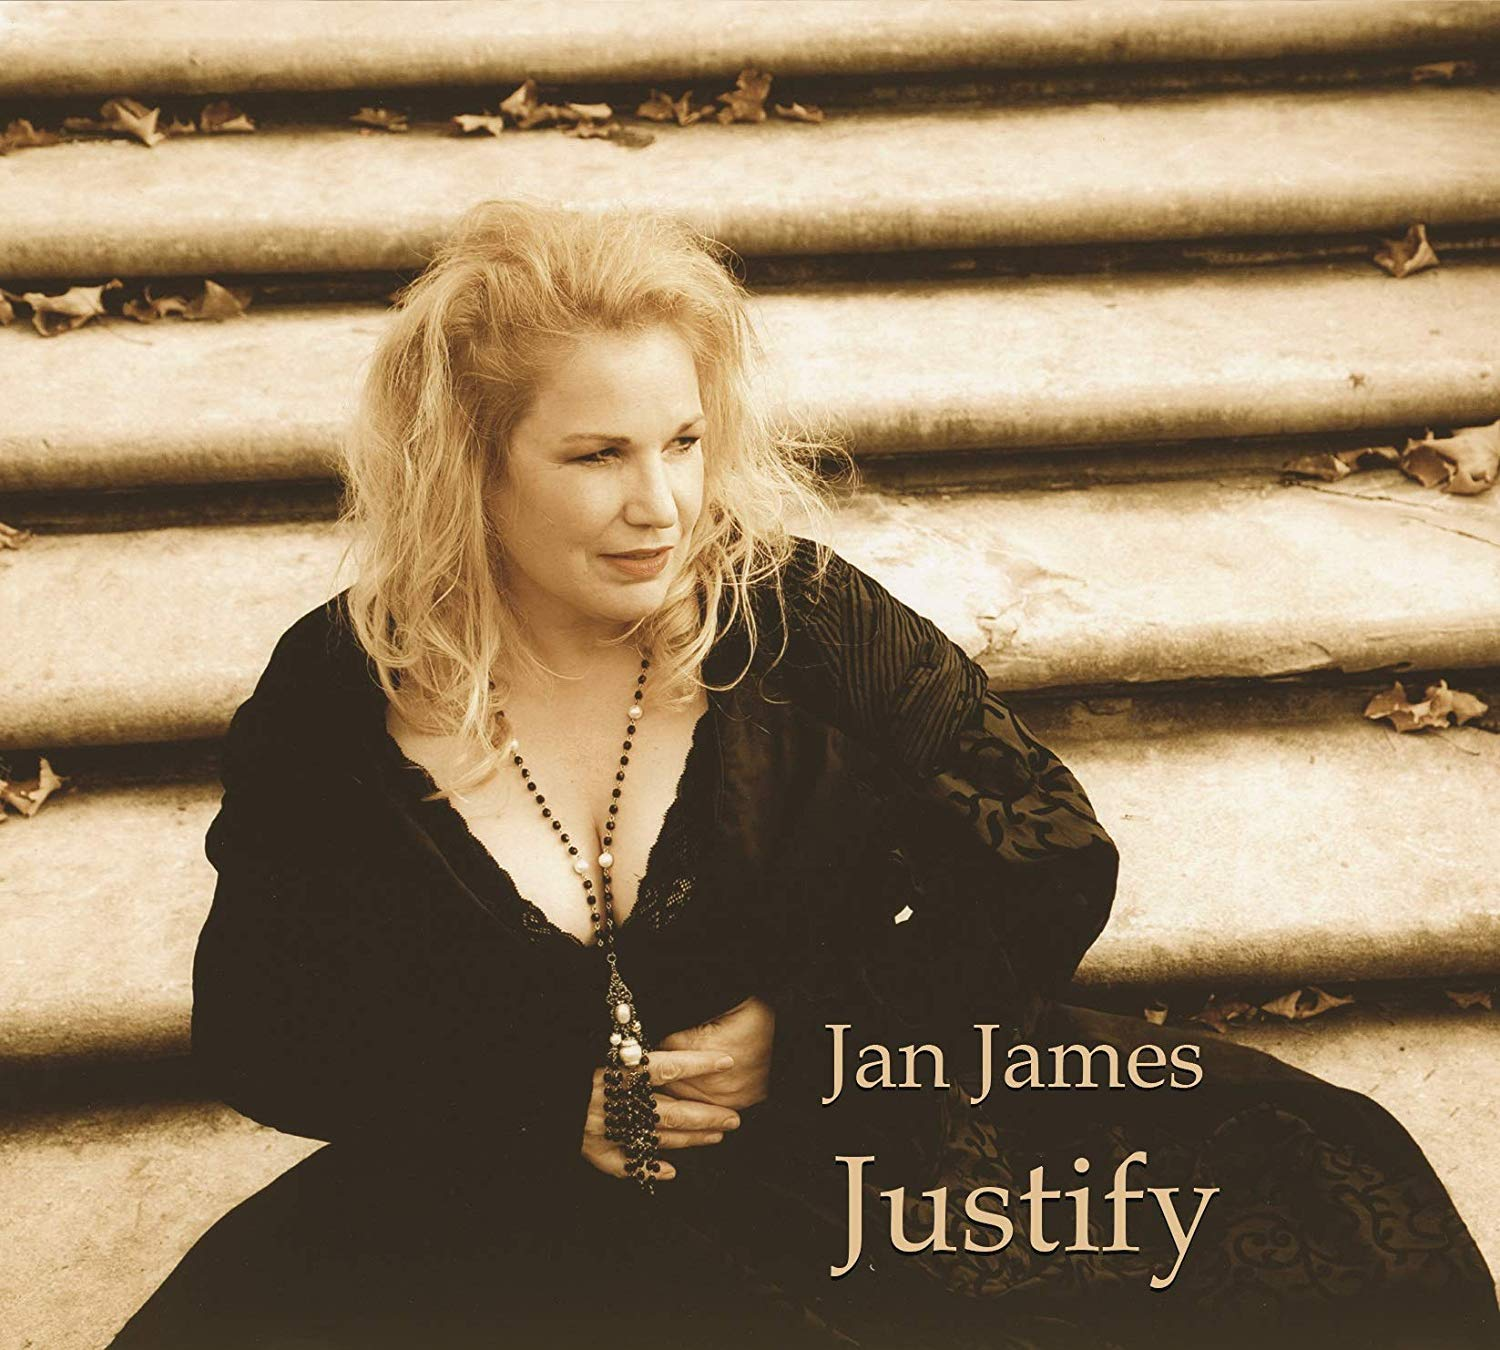 Jan James - Justify